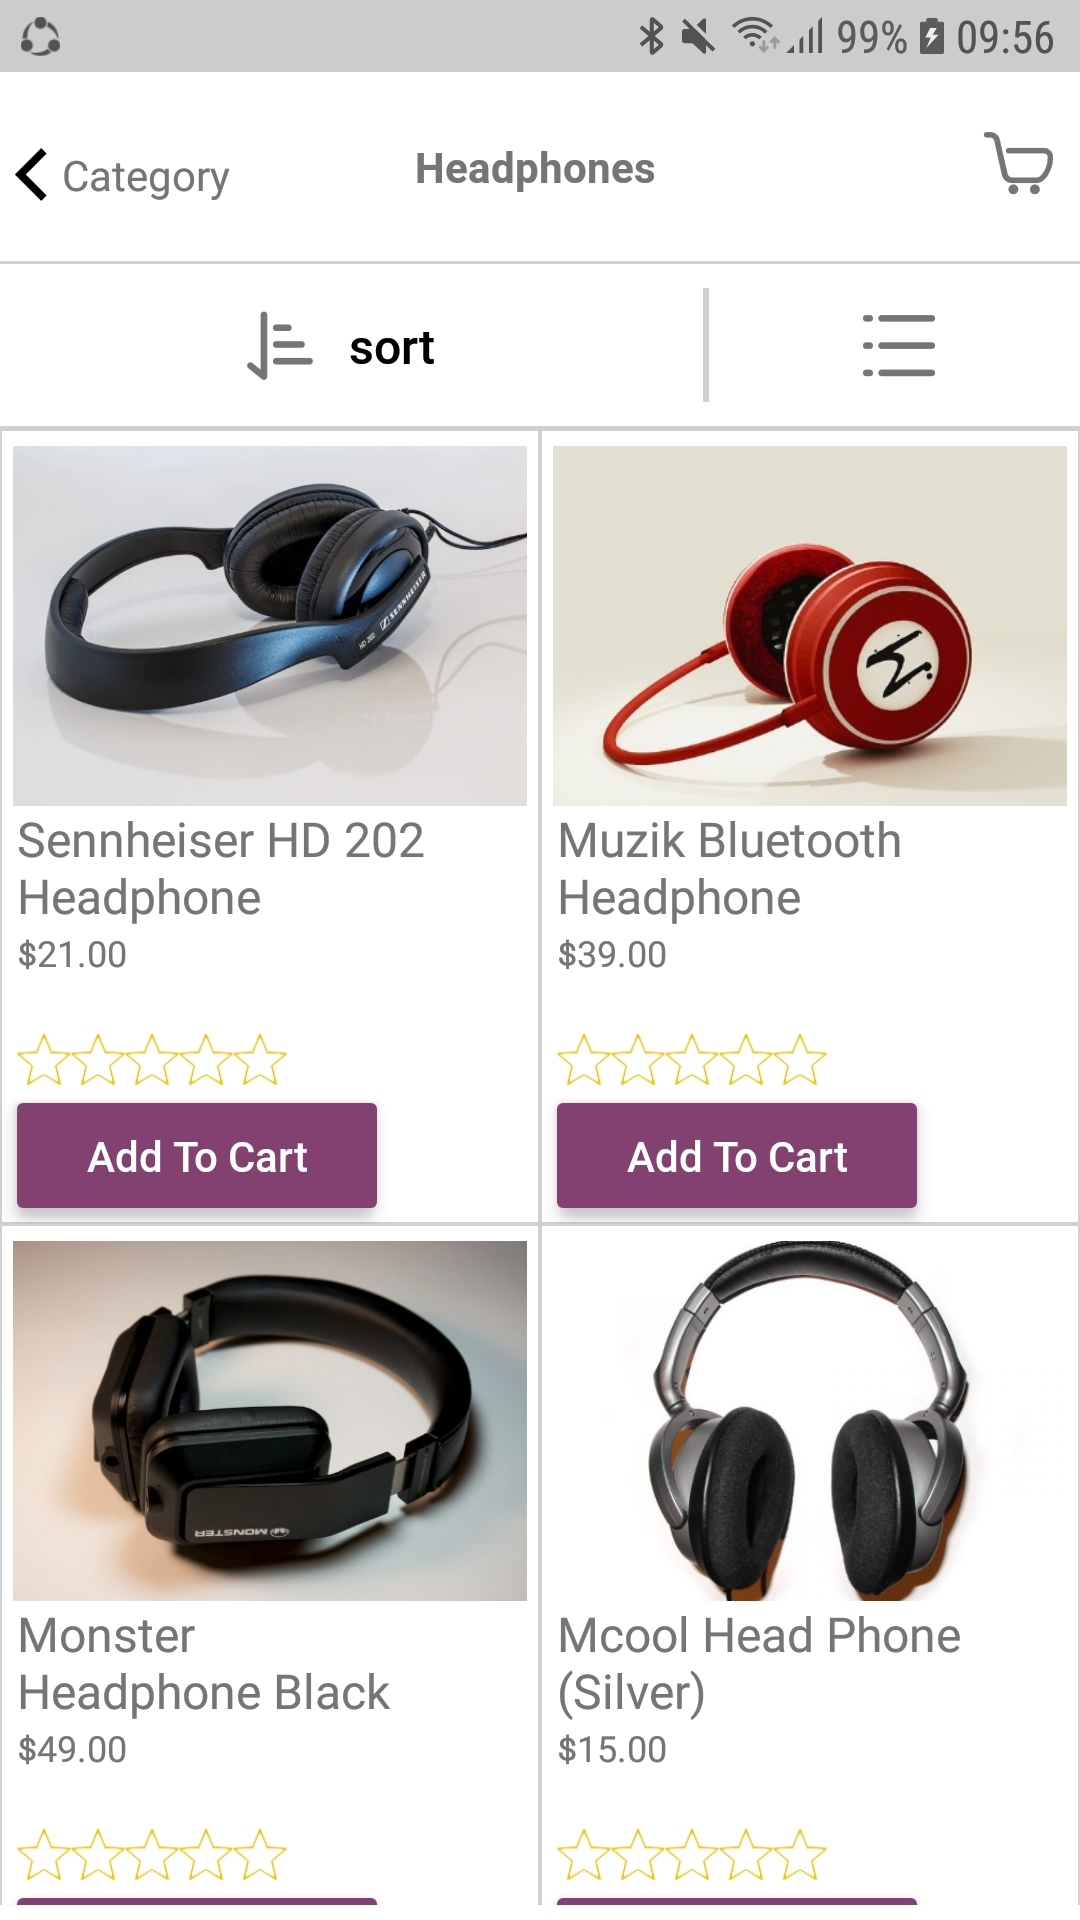 https://mobikul.com/wp-content/uploads/2019/02/Screenshot_20190219-095646_Mobikul-WooCommerce-Marketplace.jpg